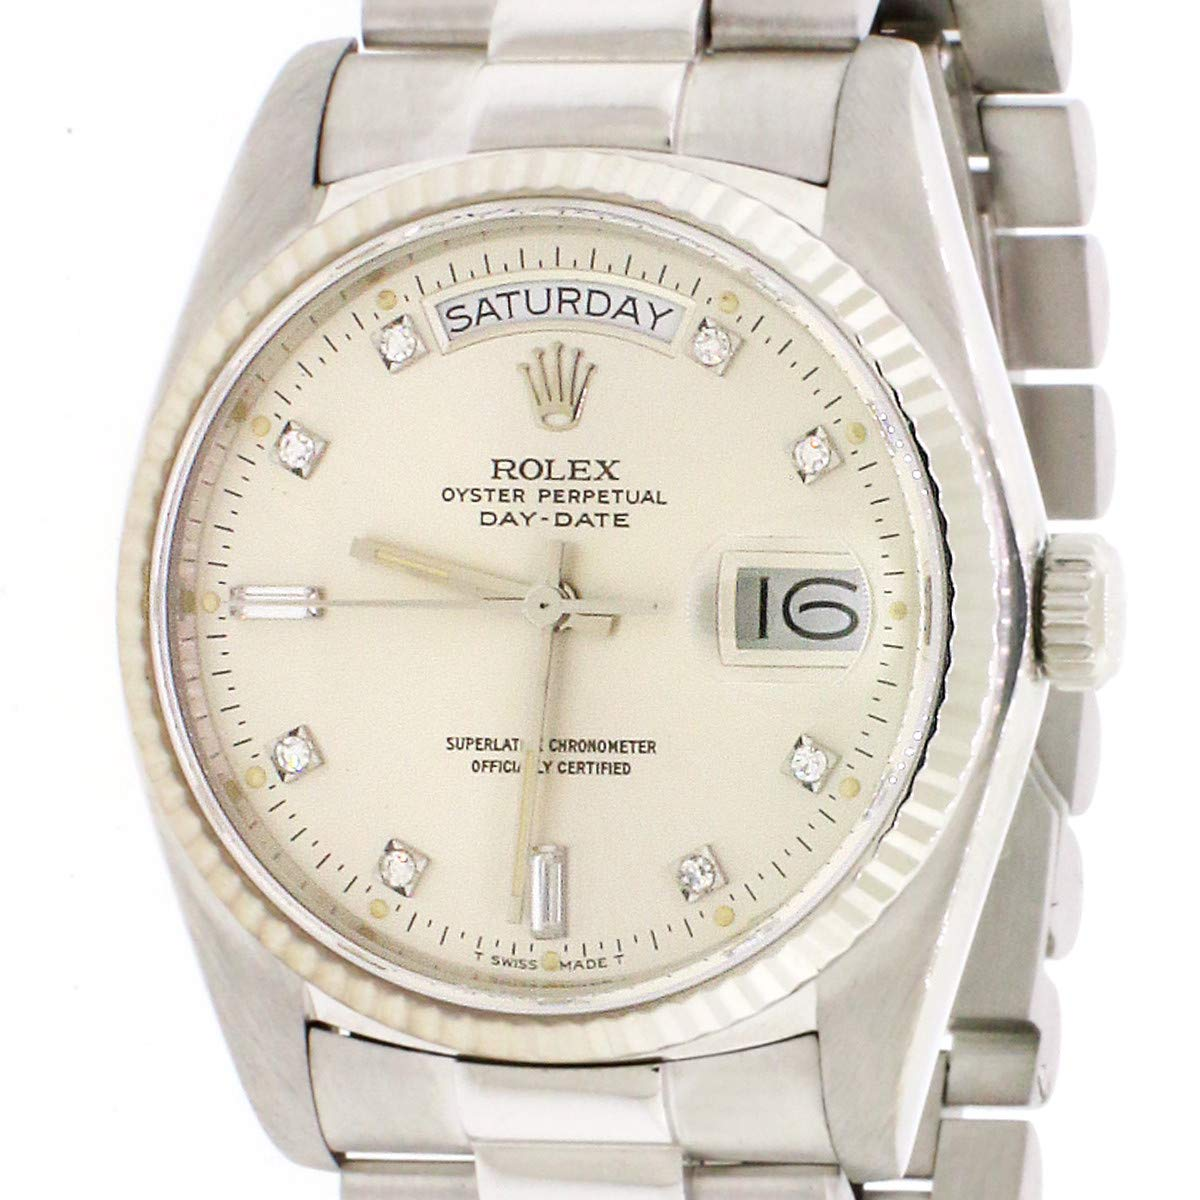 5cc32aa02c3 Amazon.com: Rolex President Day-Date White Gold 36mm Factory Diamond Dial  Automatic Watch: Rolex: Watches